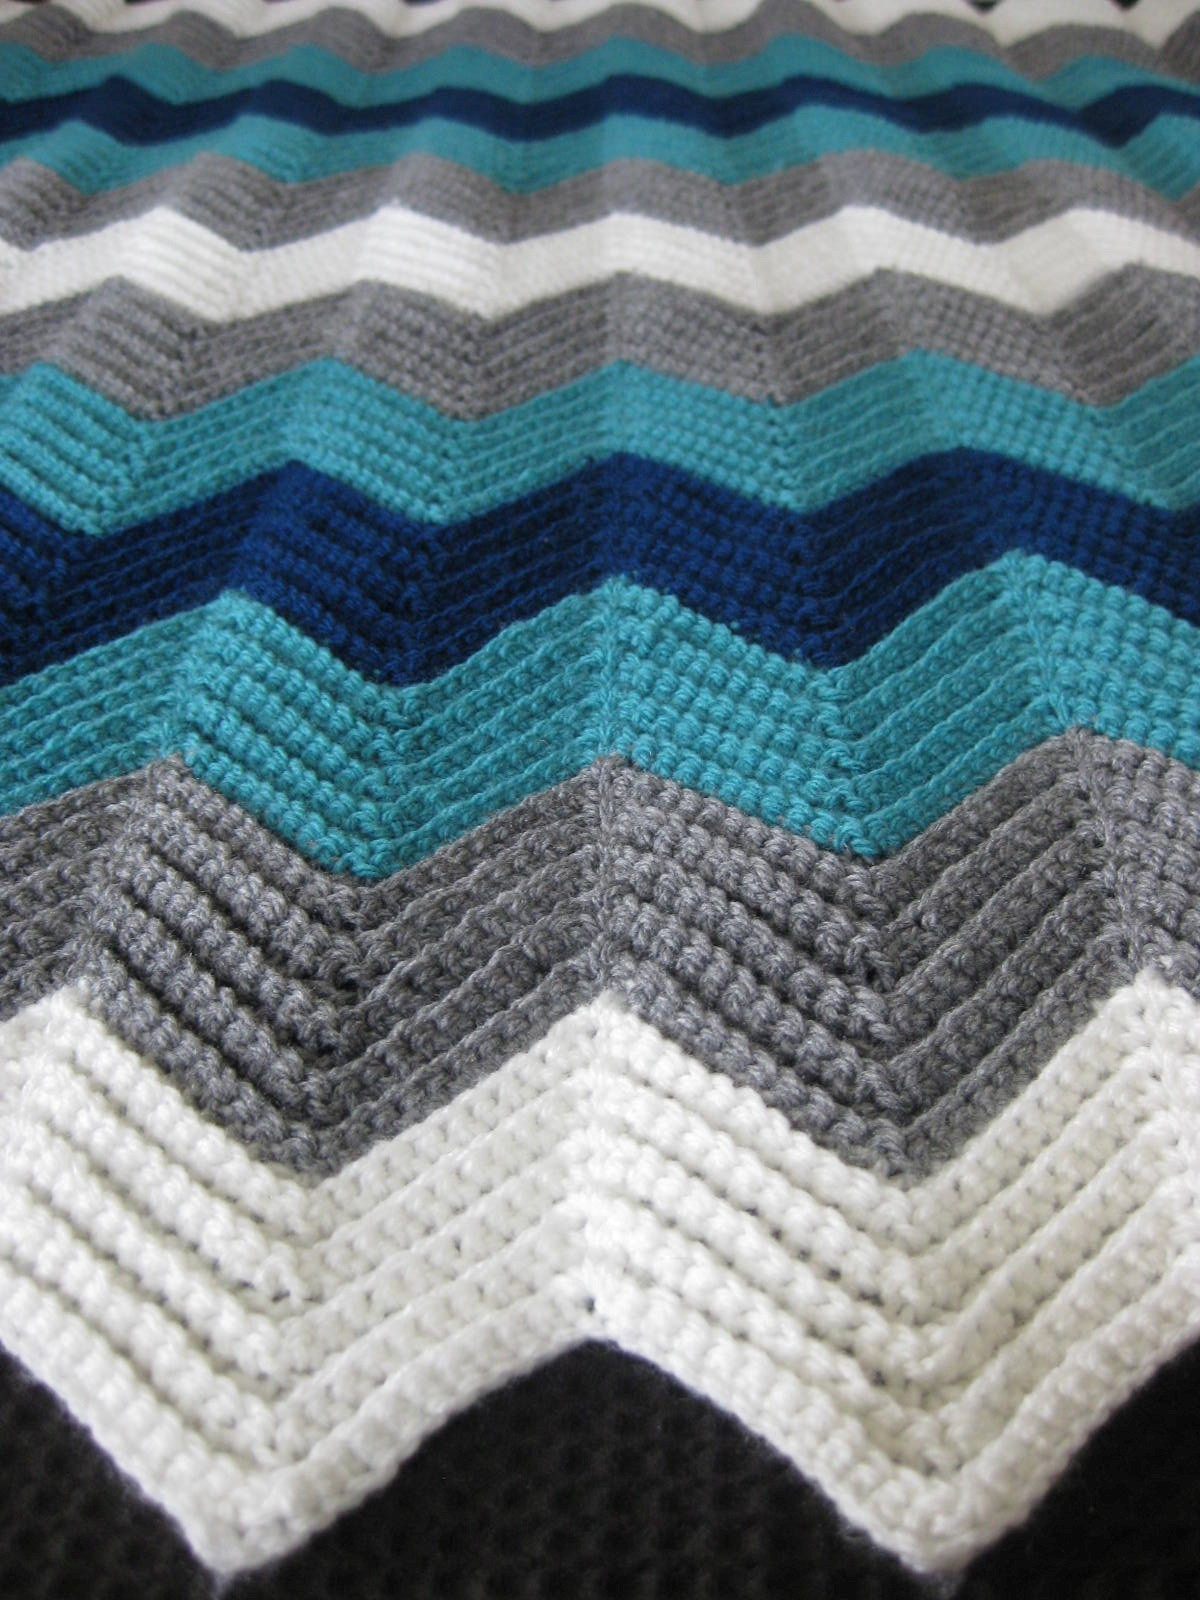 Free Crochet Afghan Patterns for Beginners Inspirational Free Crochet Ripple Afghan Patterns for Beginners Of Top 44 Ideas Free Crochet Afghan Patterns for Beginners